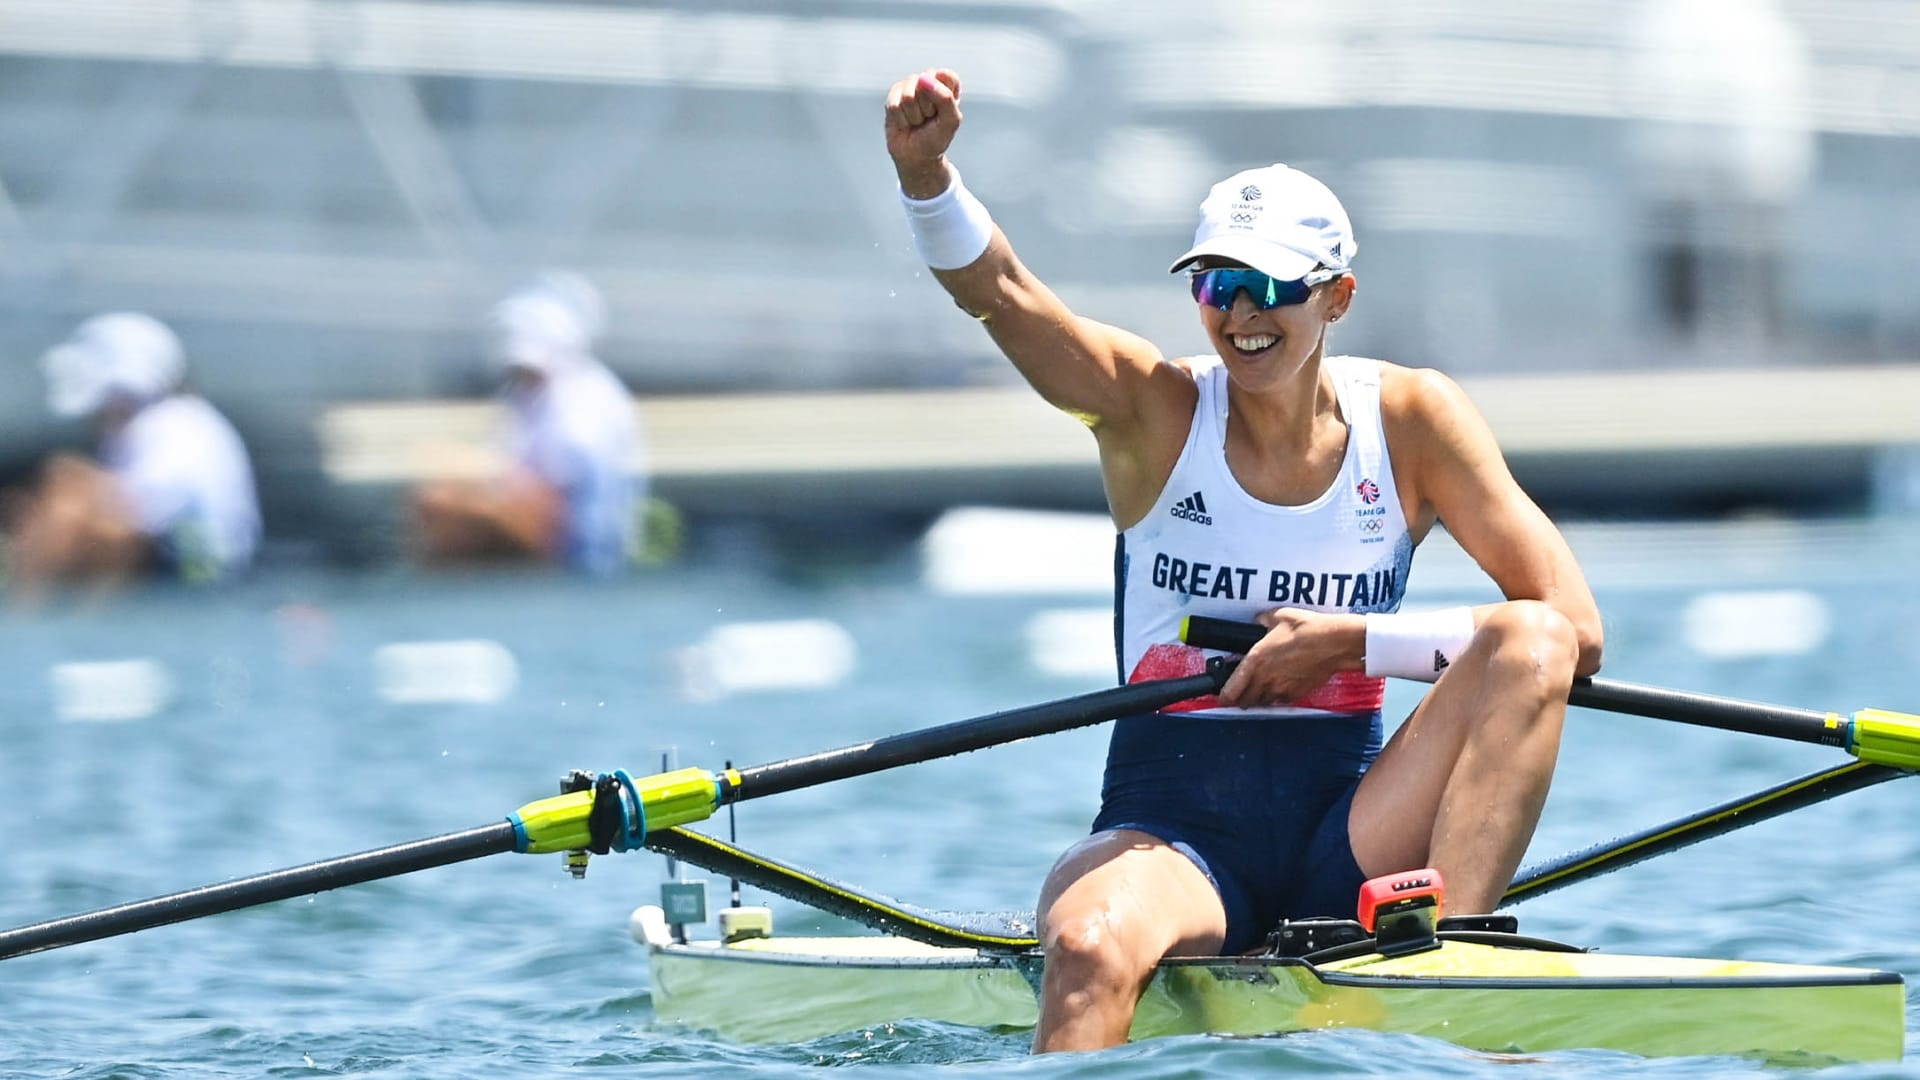 Victoria Thornley of Great Britain celebrates after finishing second in the Women's Single Sculls semi-final during the 2020 Tokyo Summer Olympic Games.